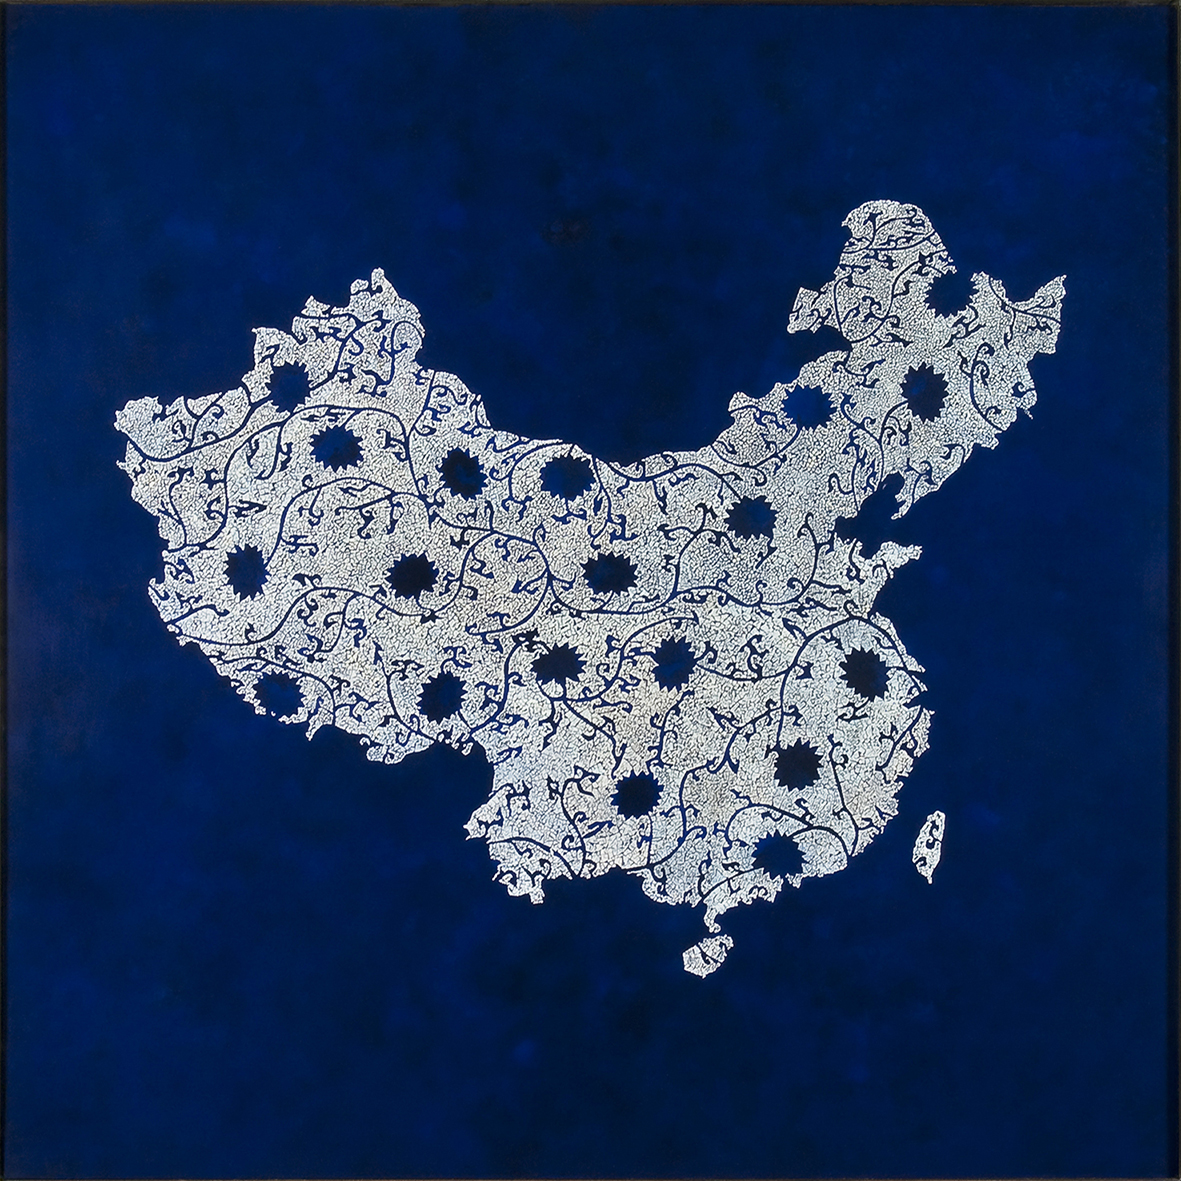 Blue & White porcelain  - Lacquered with eggshells inlays, finition in varnish - Size : 100 x 100 cm